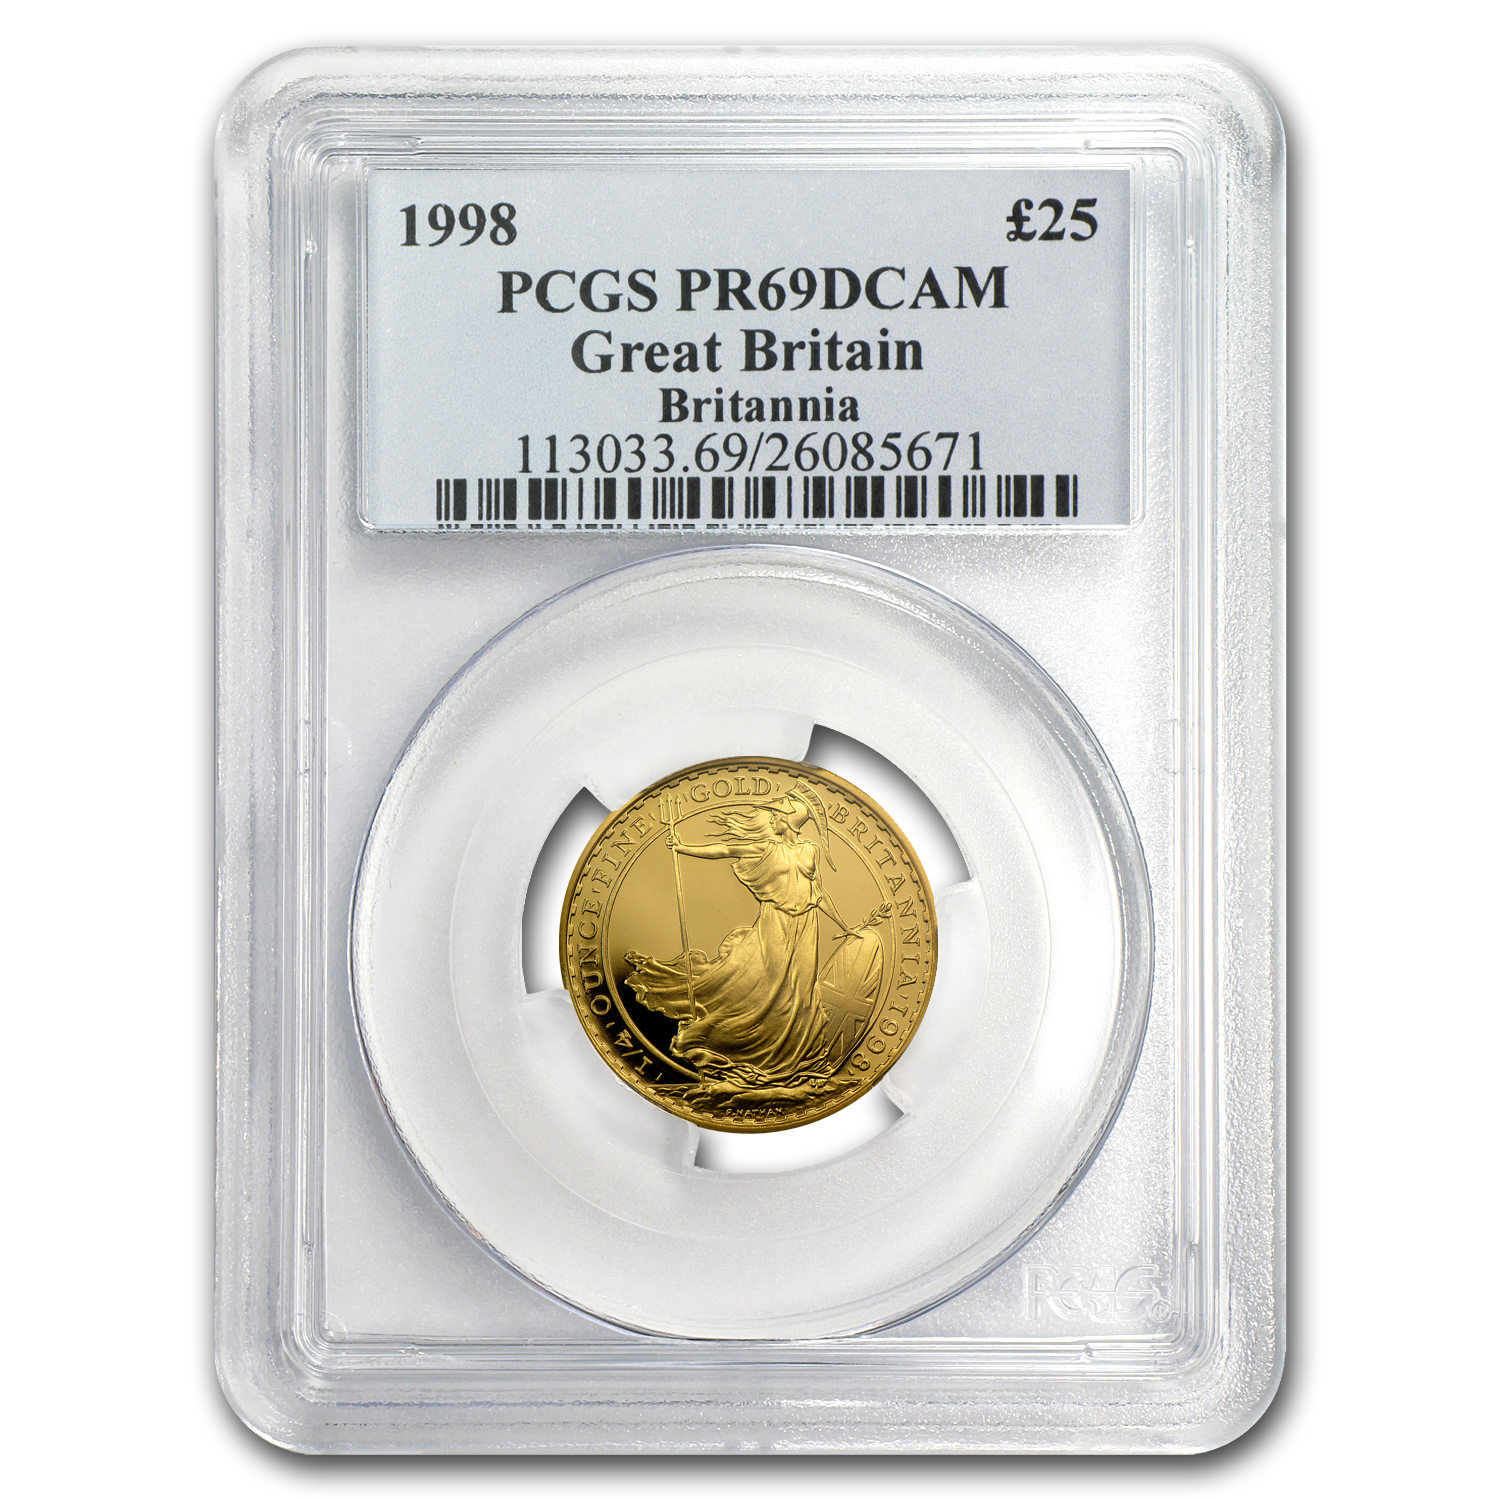 1998 Great Britain 1/4 oz Proof Gold Britannia PR-69 PCGS